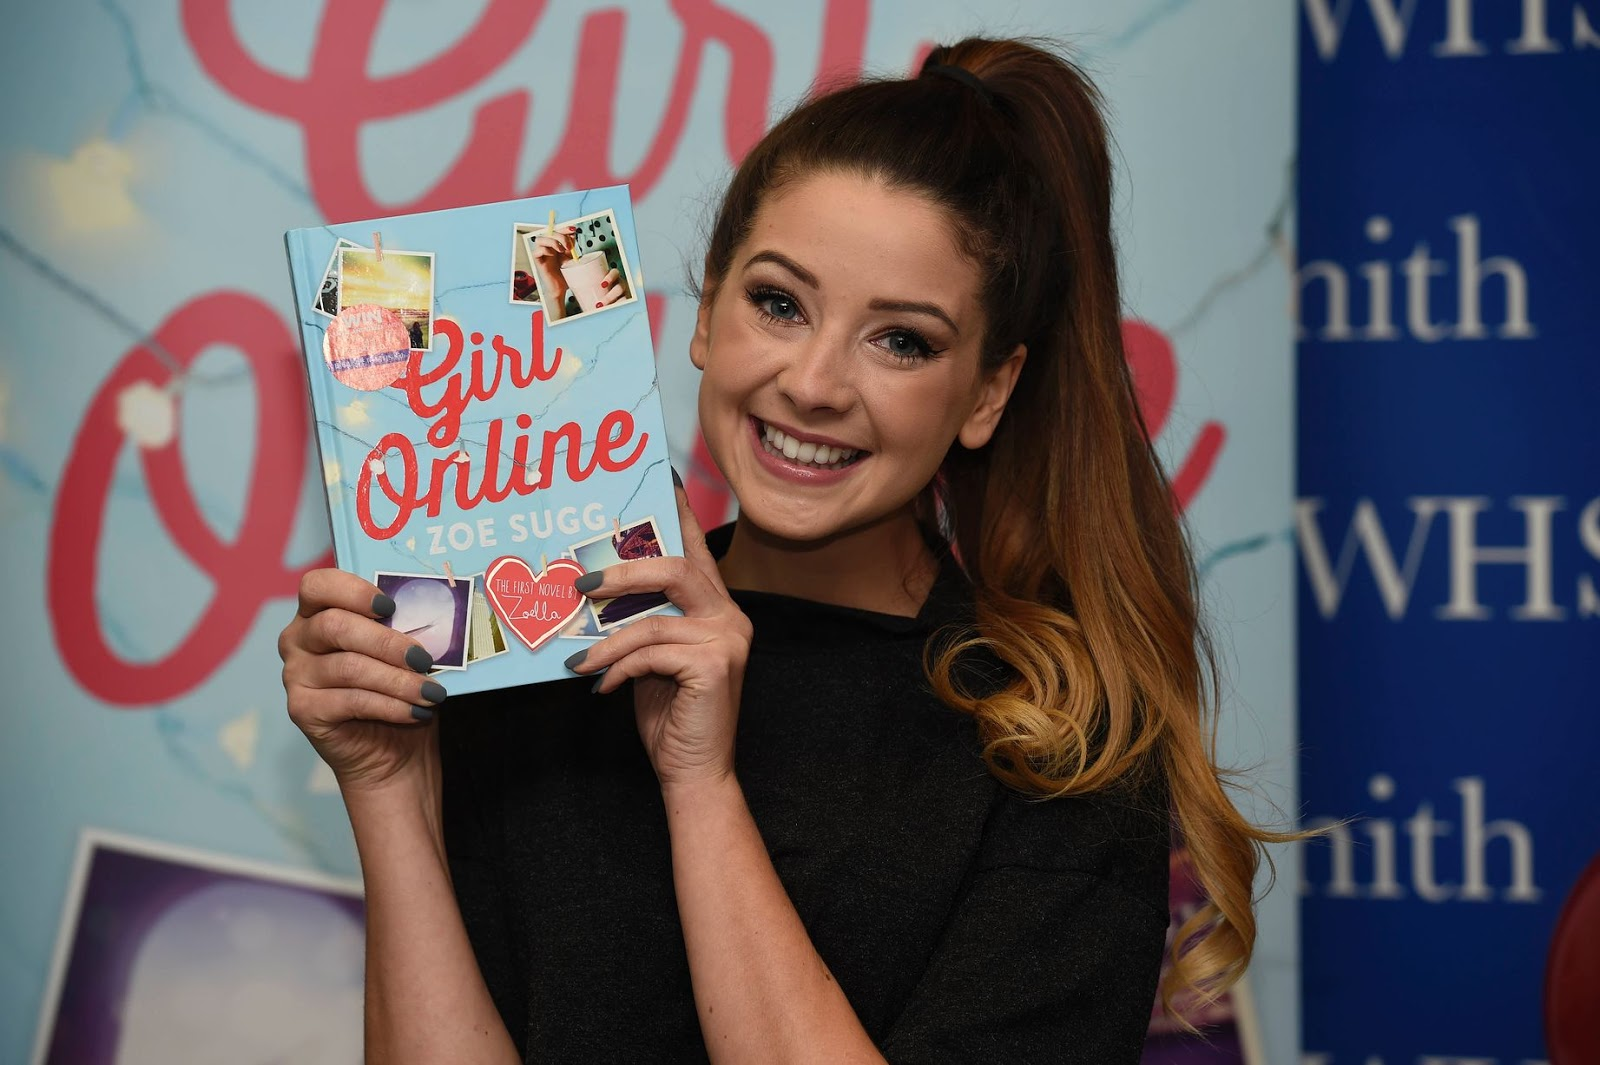 zoella, girl online, blogger, youtuber, zoella youtube channel, future of blogging, 2016, 100 Ways to 30